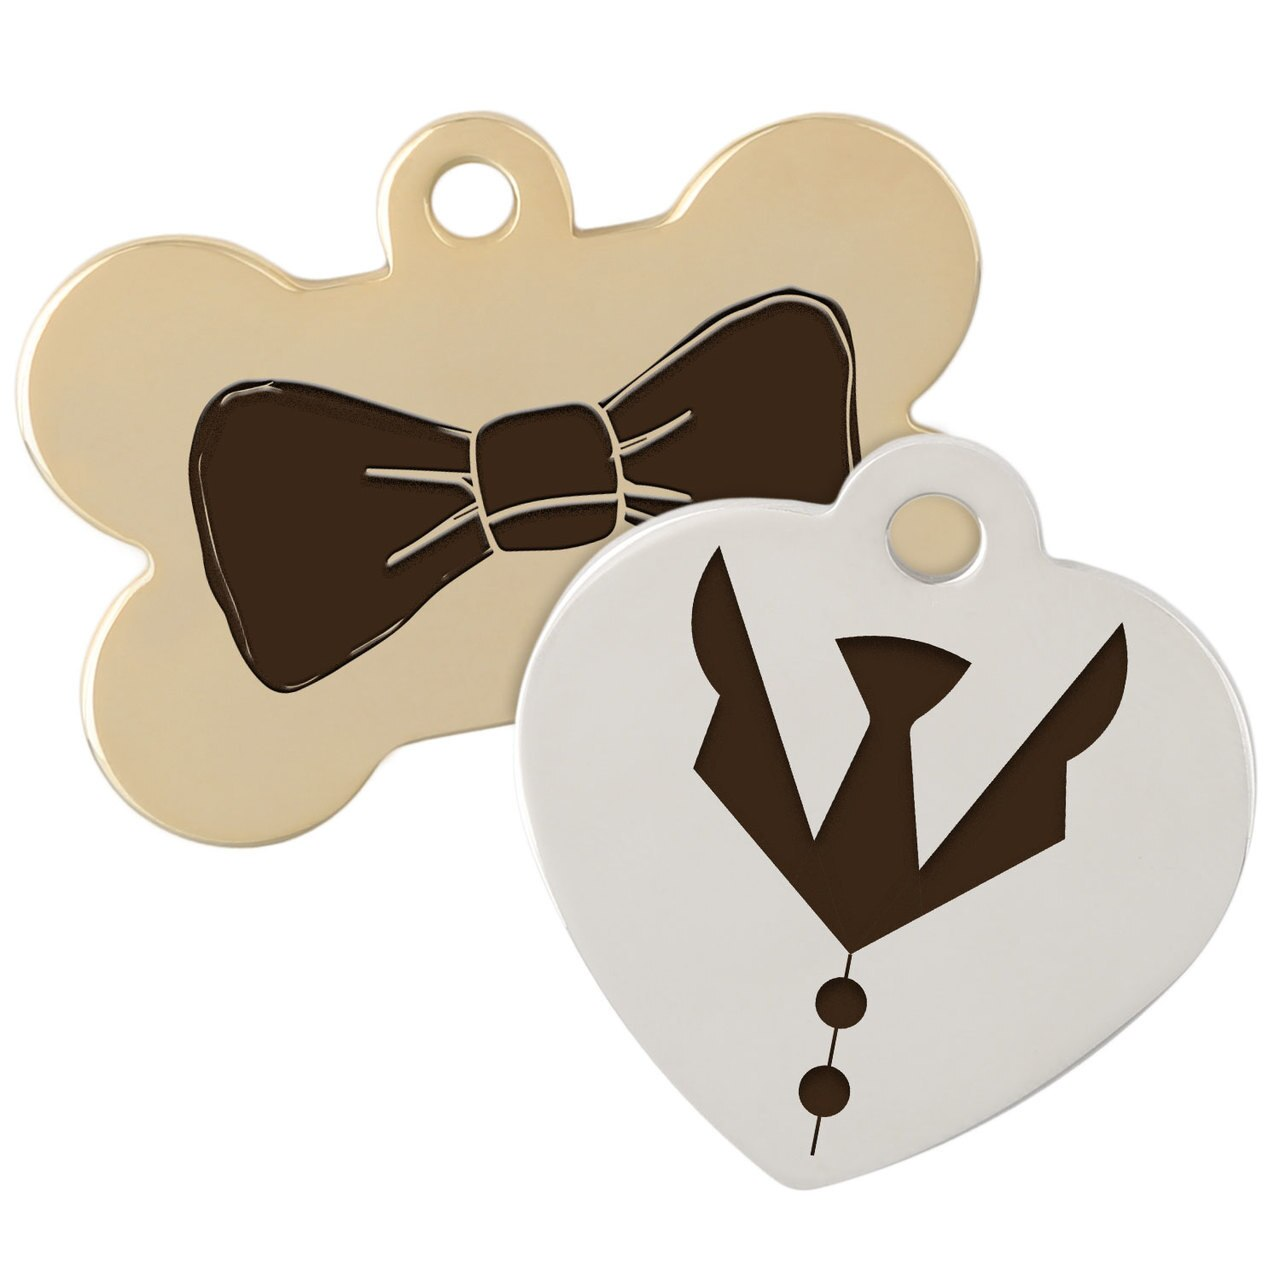 dogIDs Signature Fancy Suit and Tie Dog ID Tags